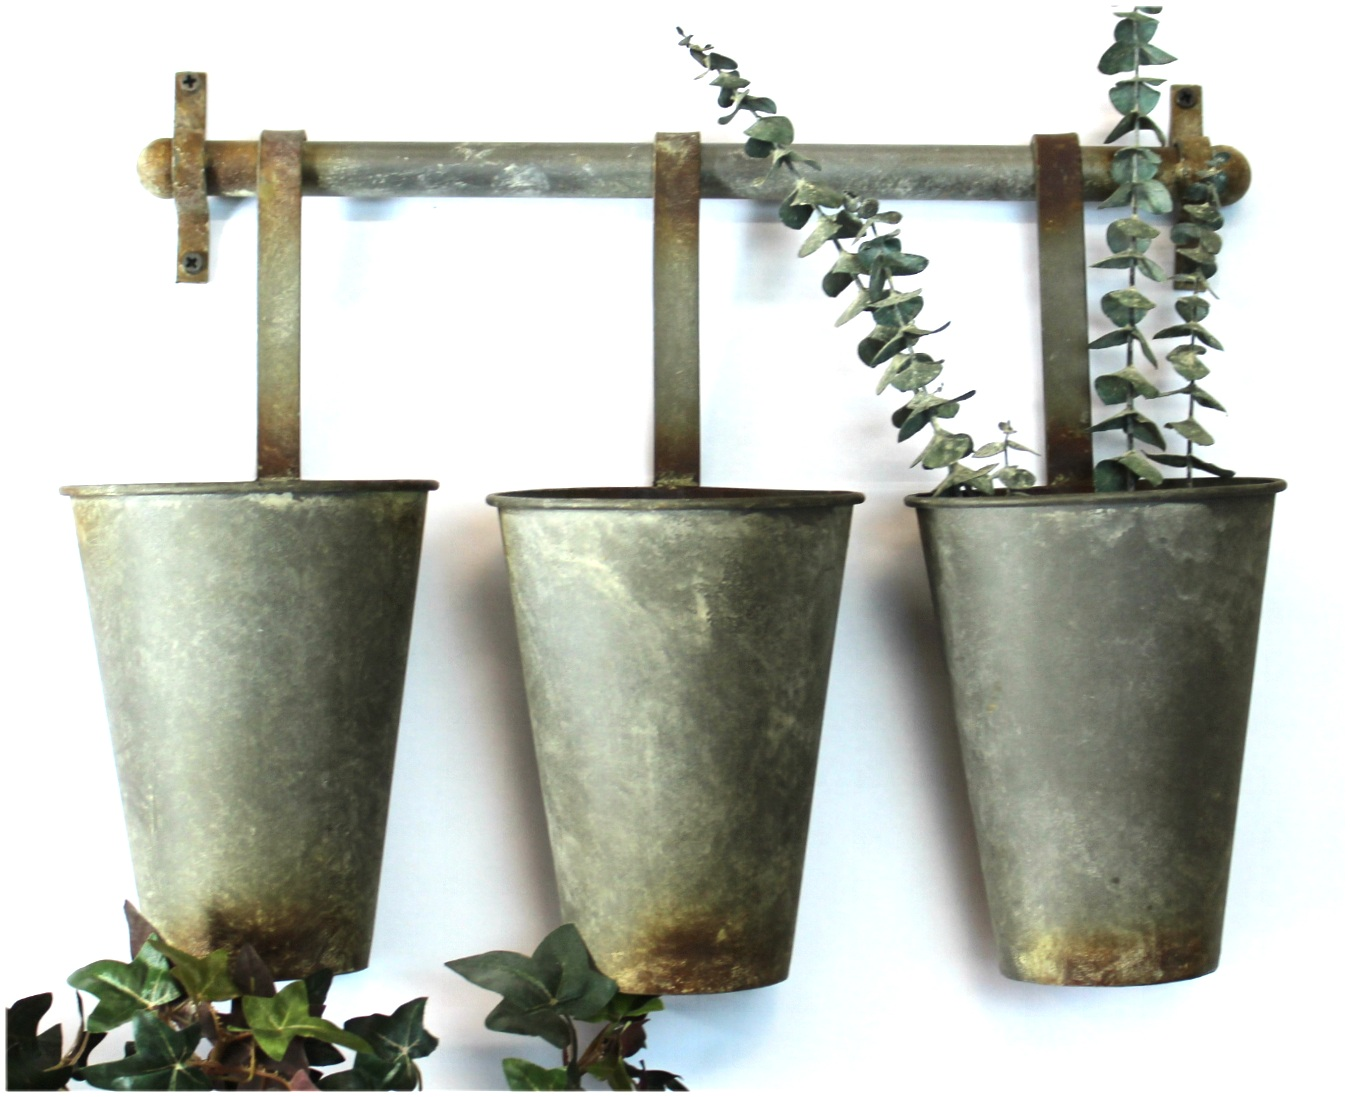 Wall Mounted Aged Tin Metal Garden Buckets Use for Flowers Pencils Storage